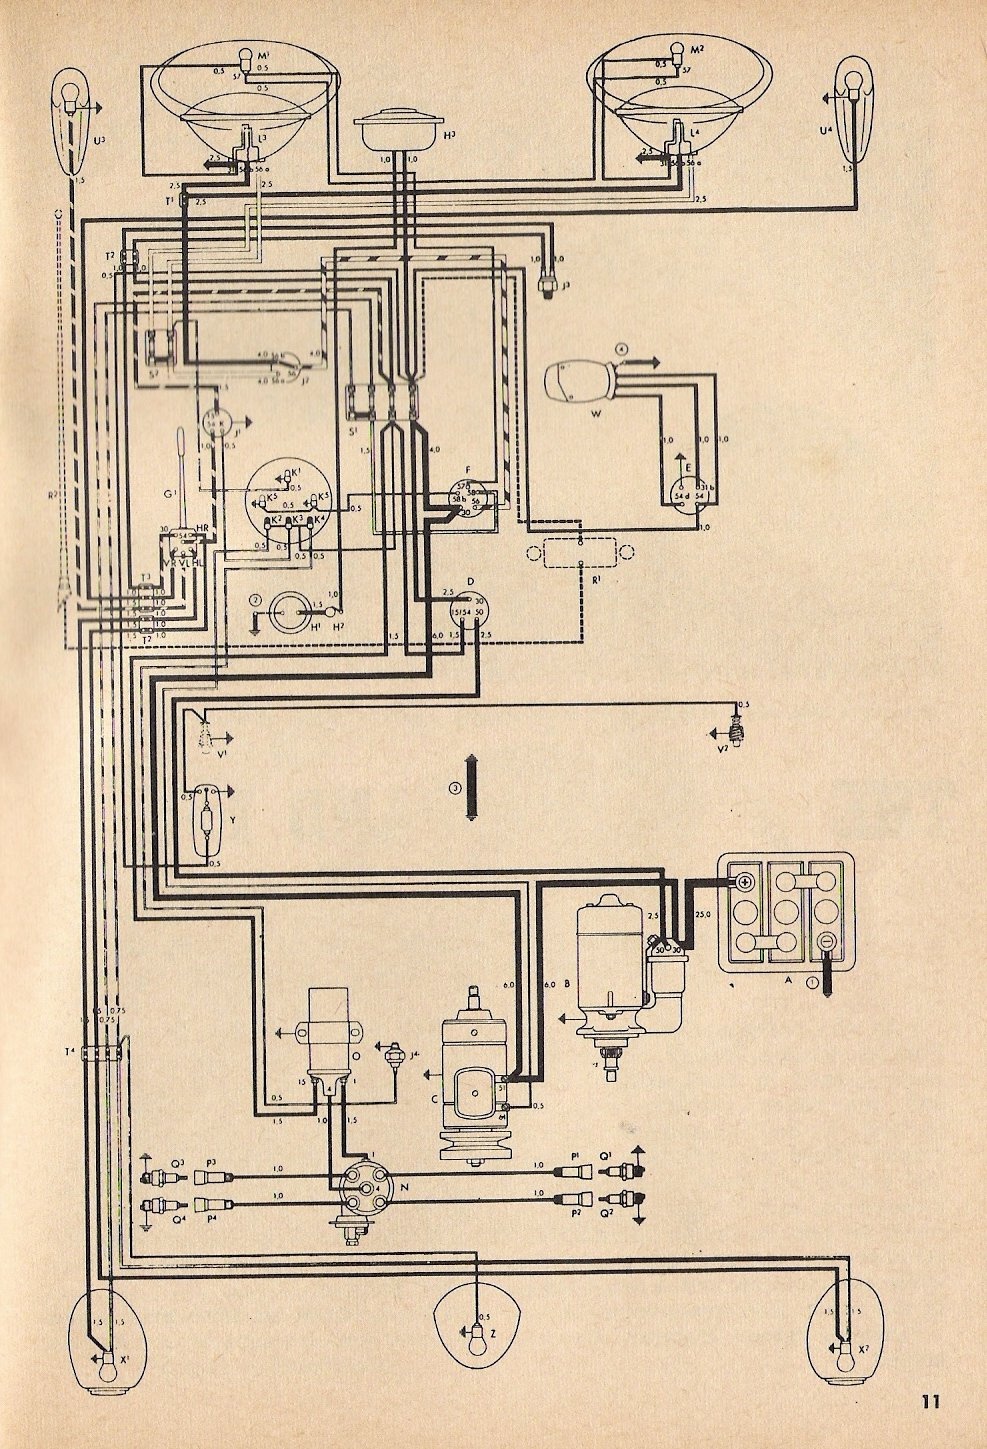 bug_toaug57 1957 beetle wiring diagram thegoldenbug com 1957 vw beetle wiring diagram at bayanpartner.co